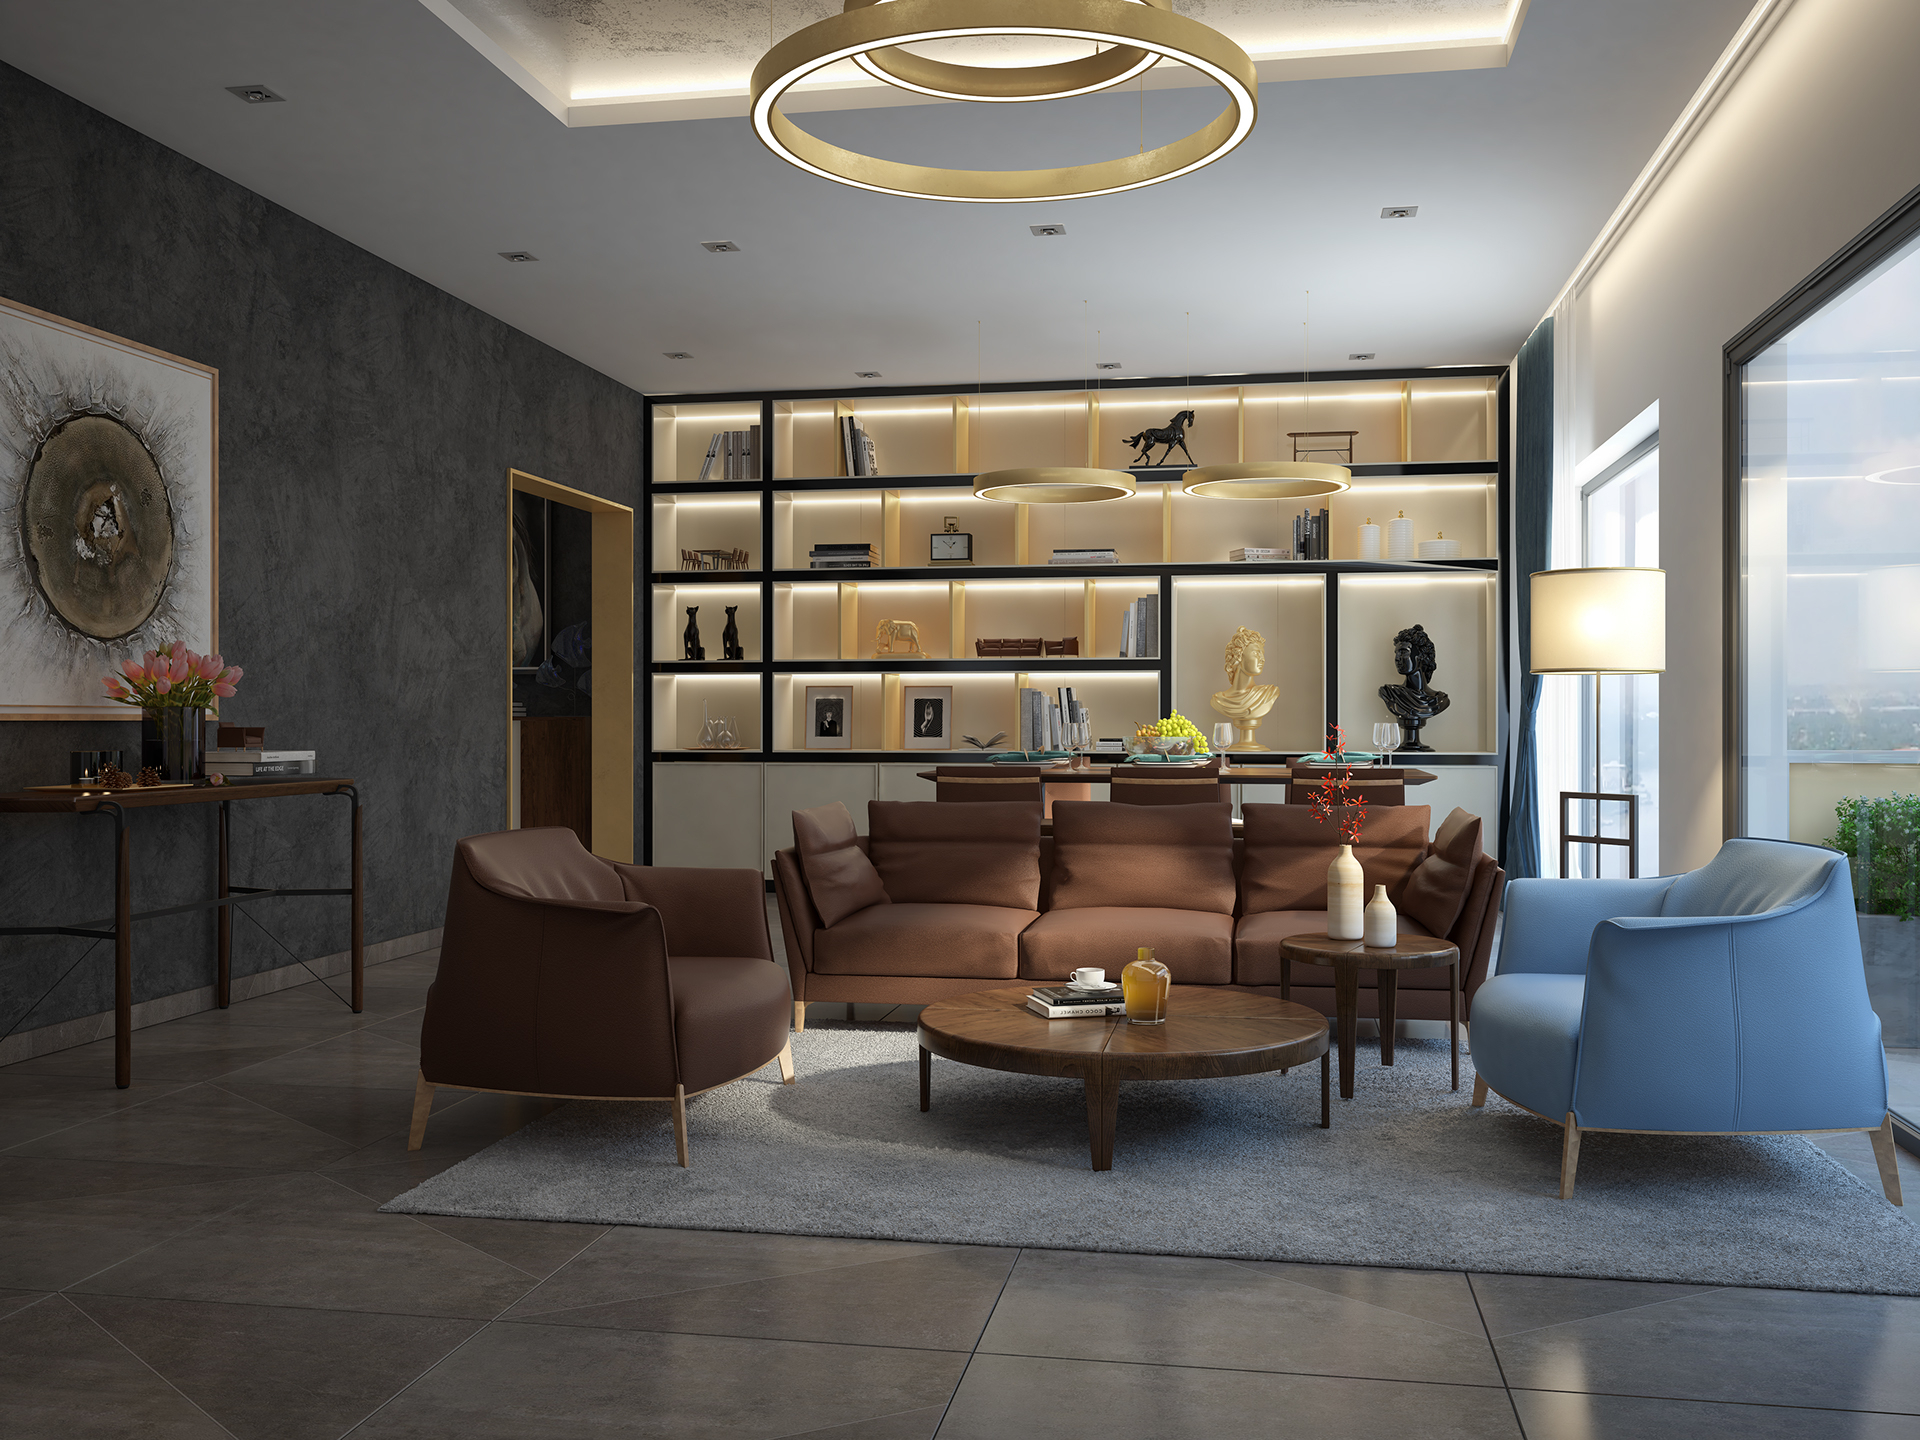 Gorgeous Living Room Designs With A Luxury And Modern Interior